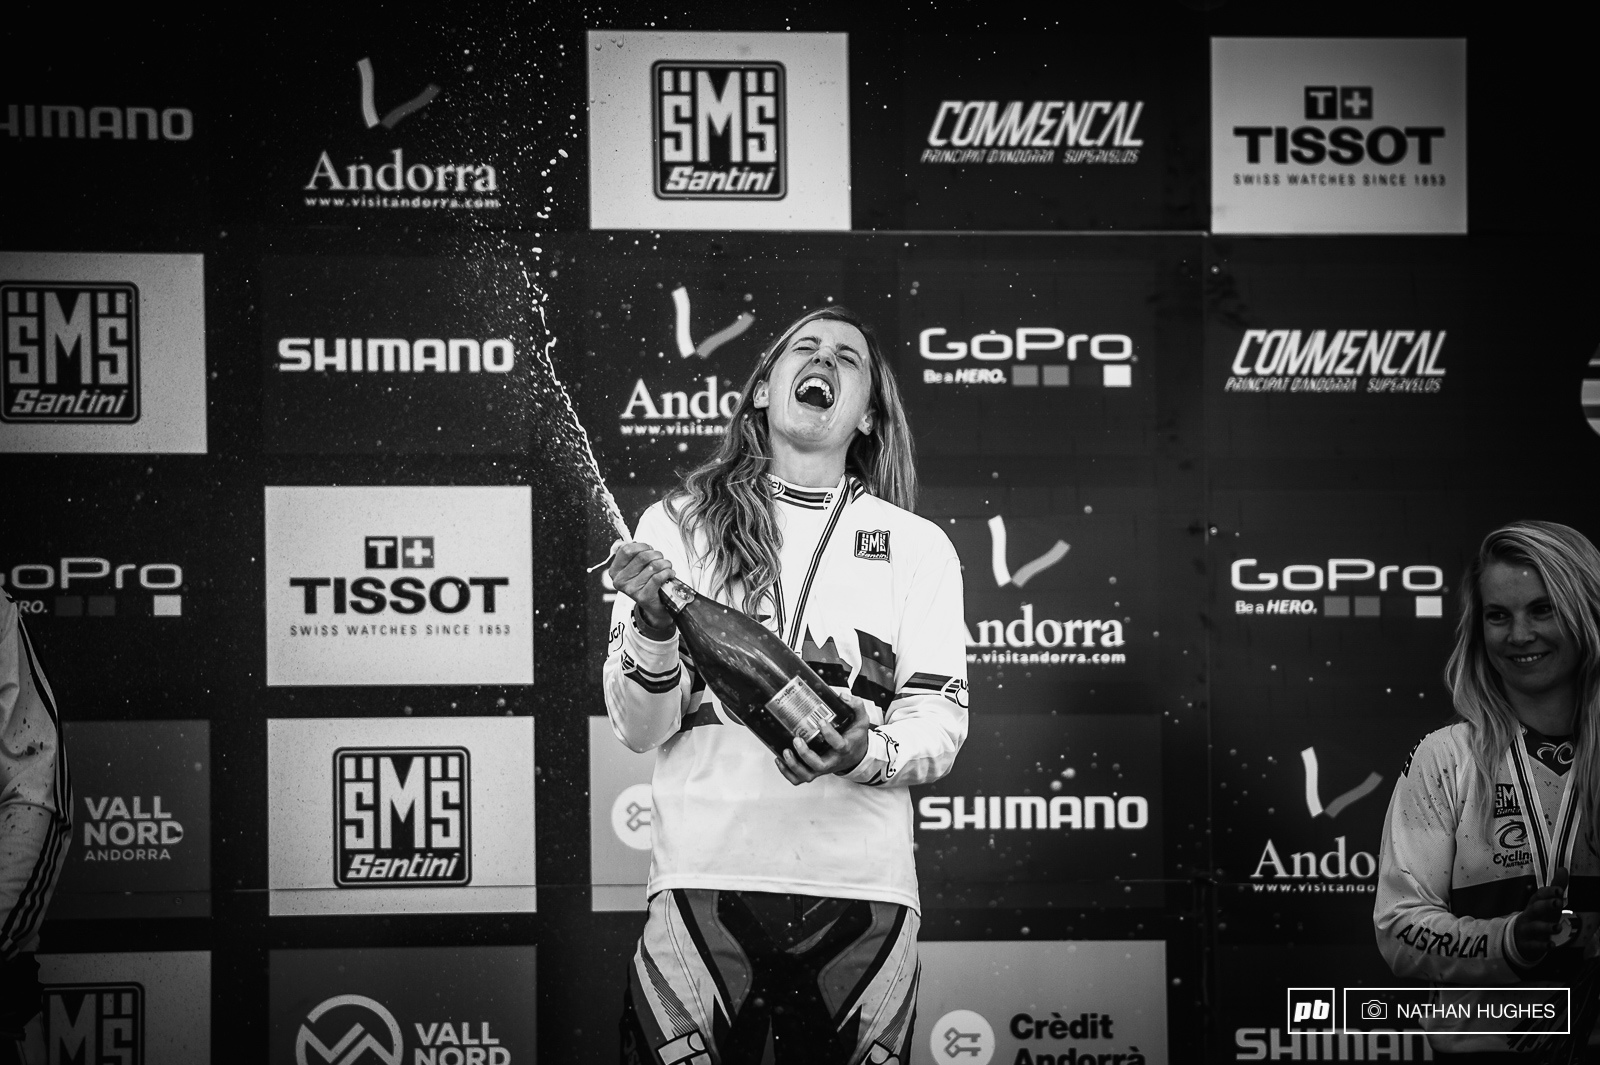 World Champs champagne glory once again for Rachel Atherton after a year of no stripes.